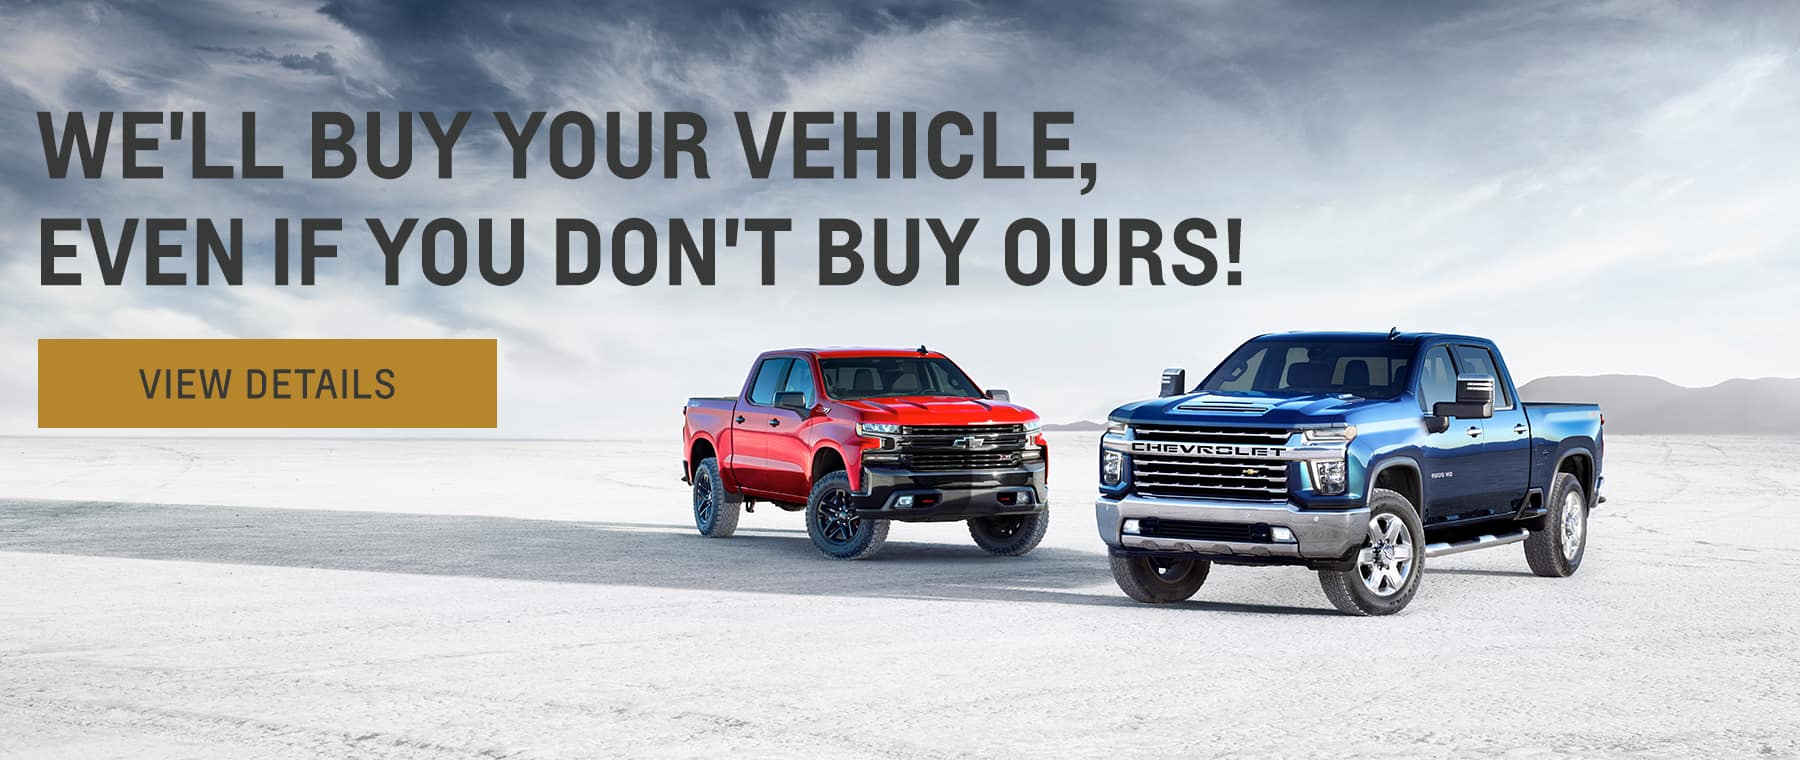 We'll buy your vehicle, even if you don't buy ours!,